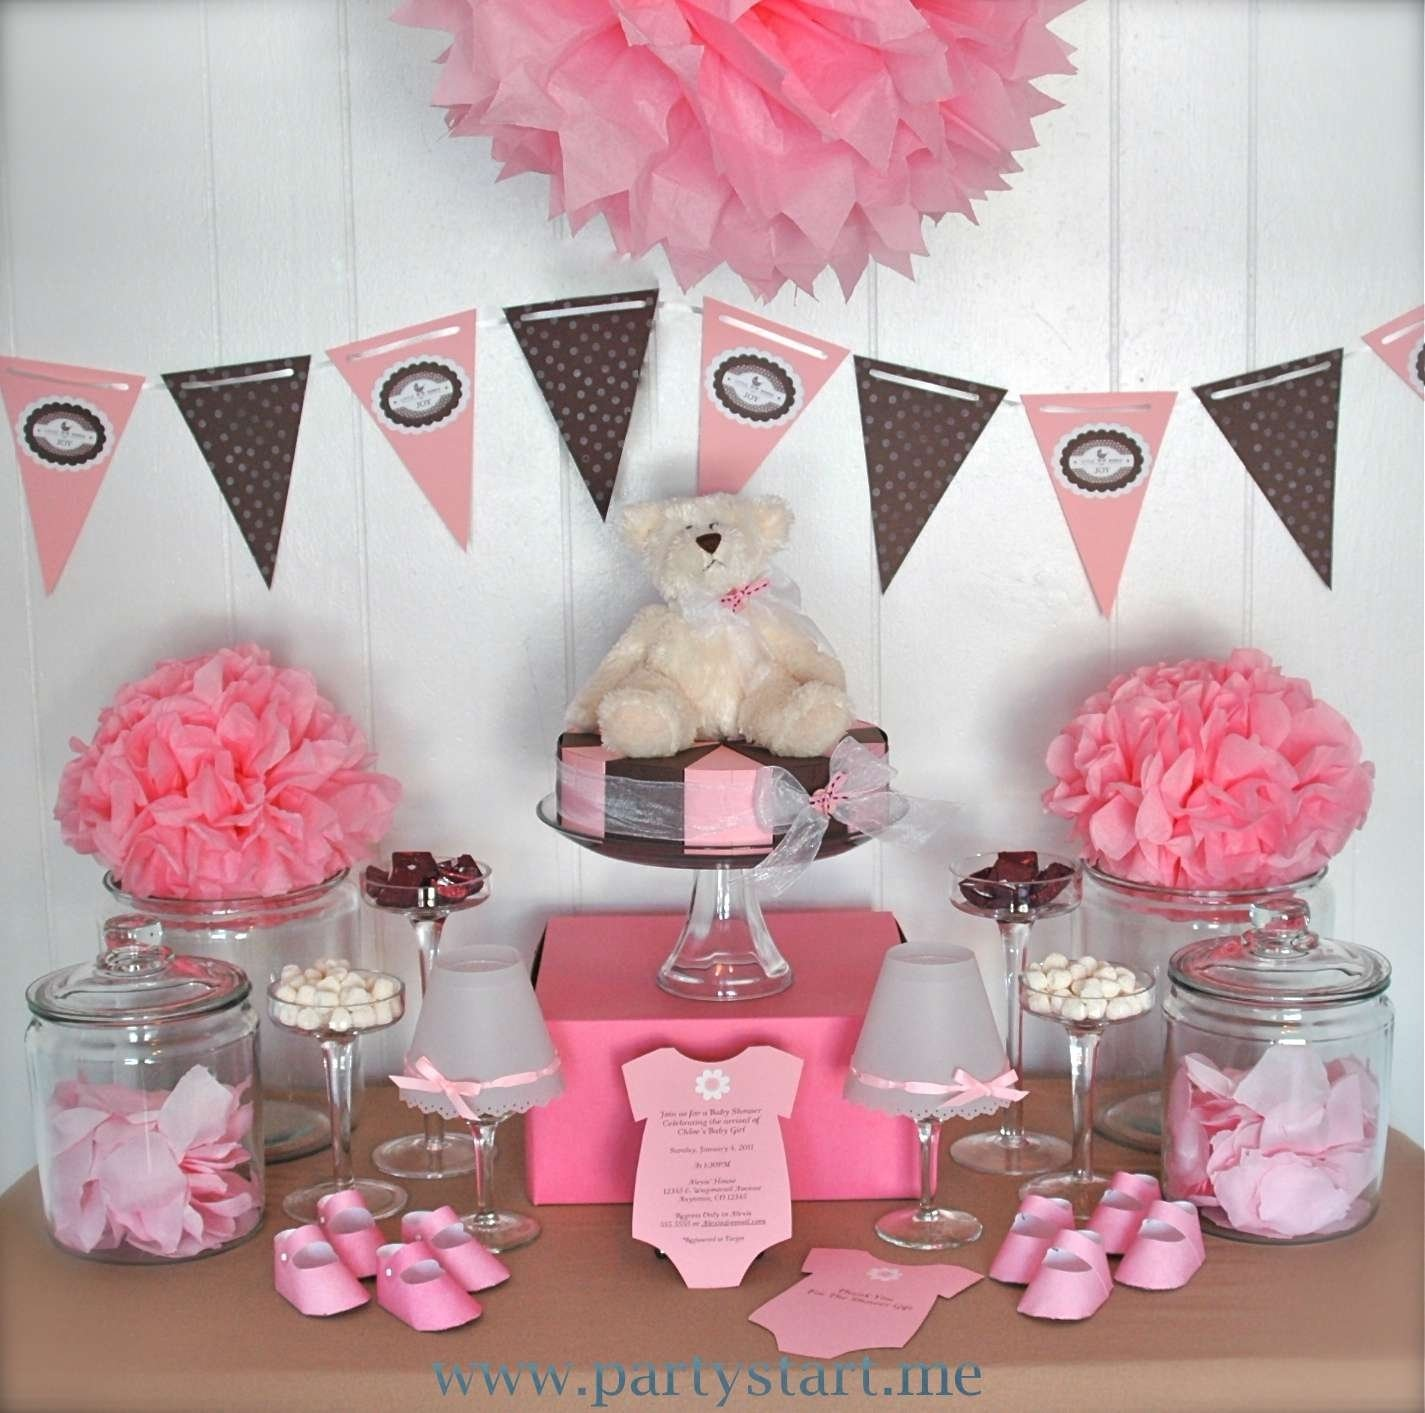 10 Unique Cute Baby Shower Ideas For A Girl cute baby shower ideas for a girl e280a2 baby showers ideas 2020